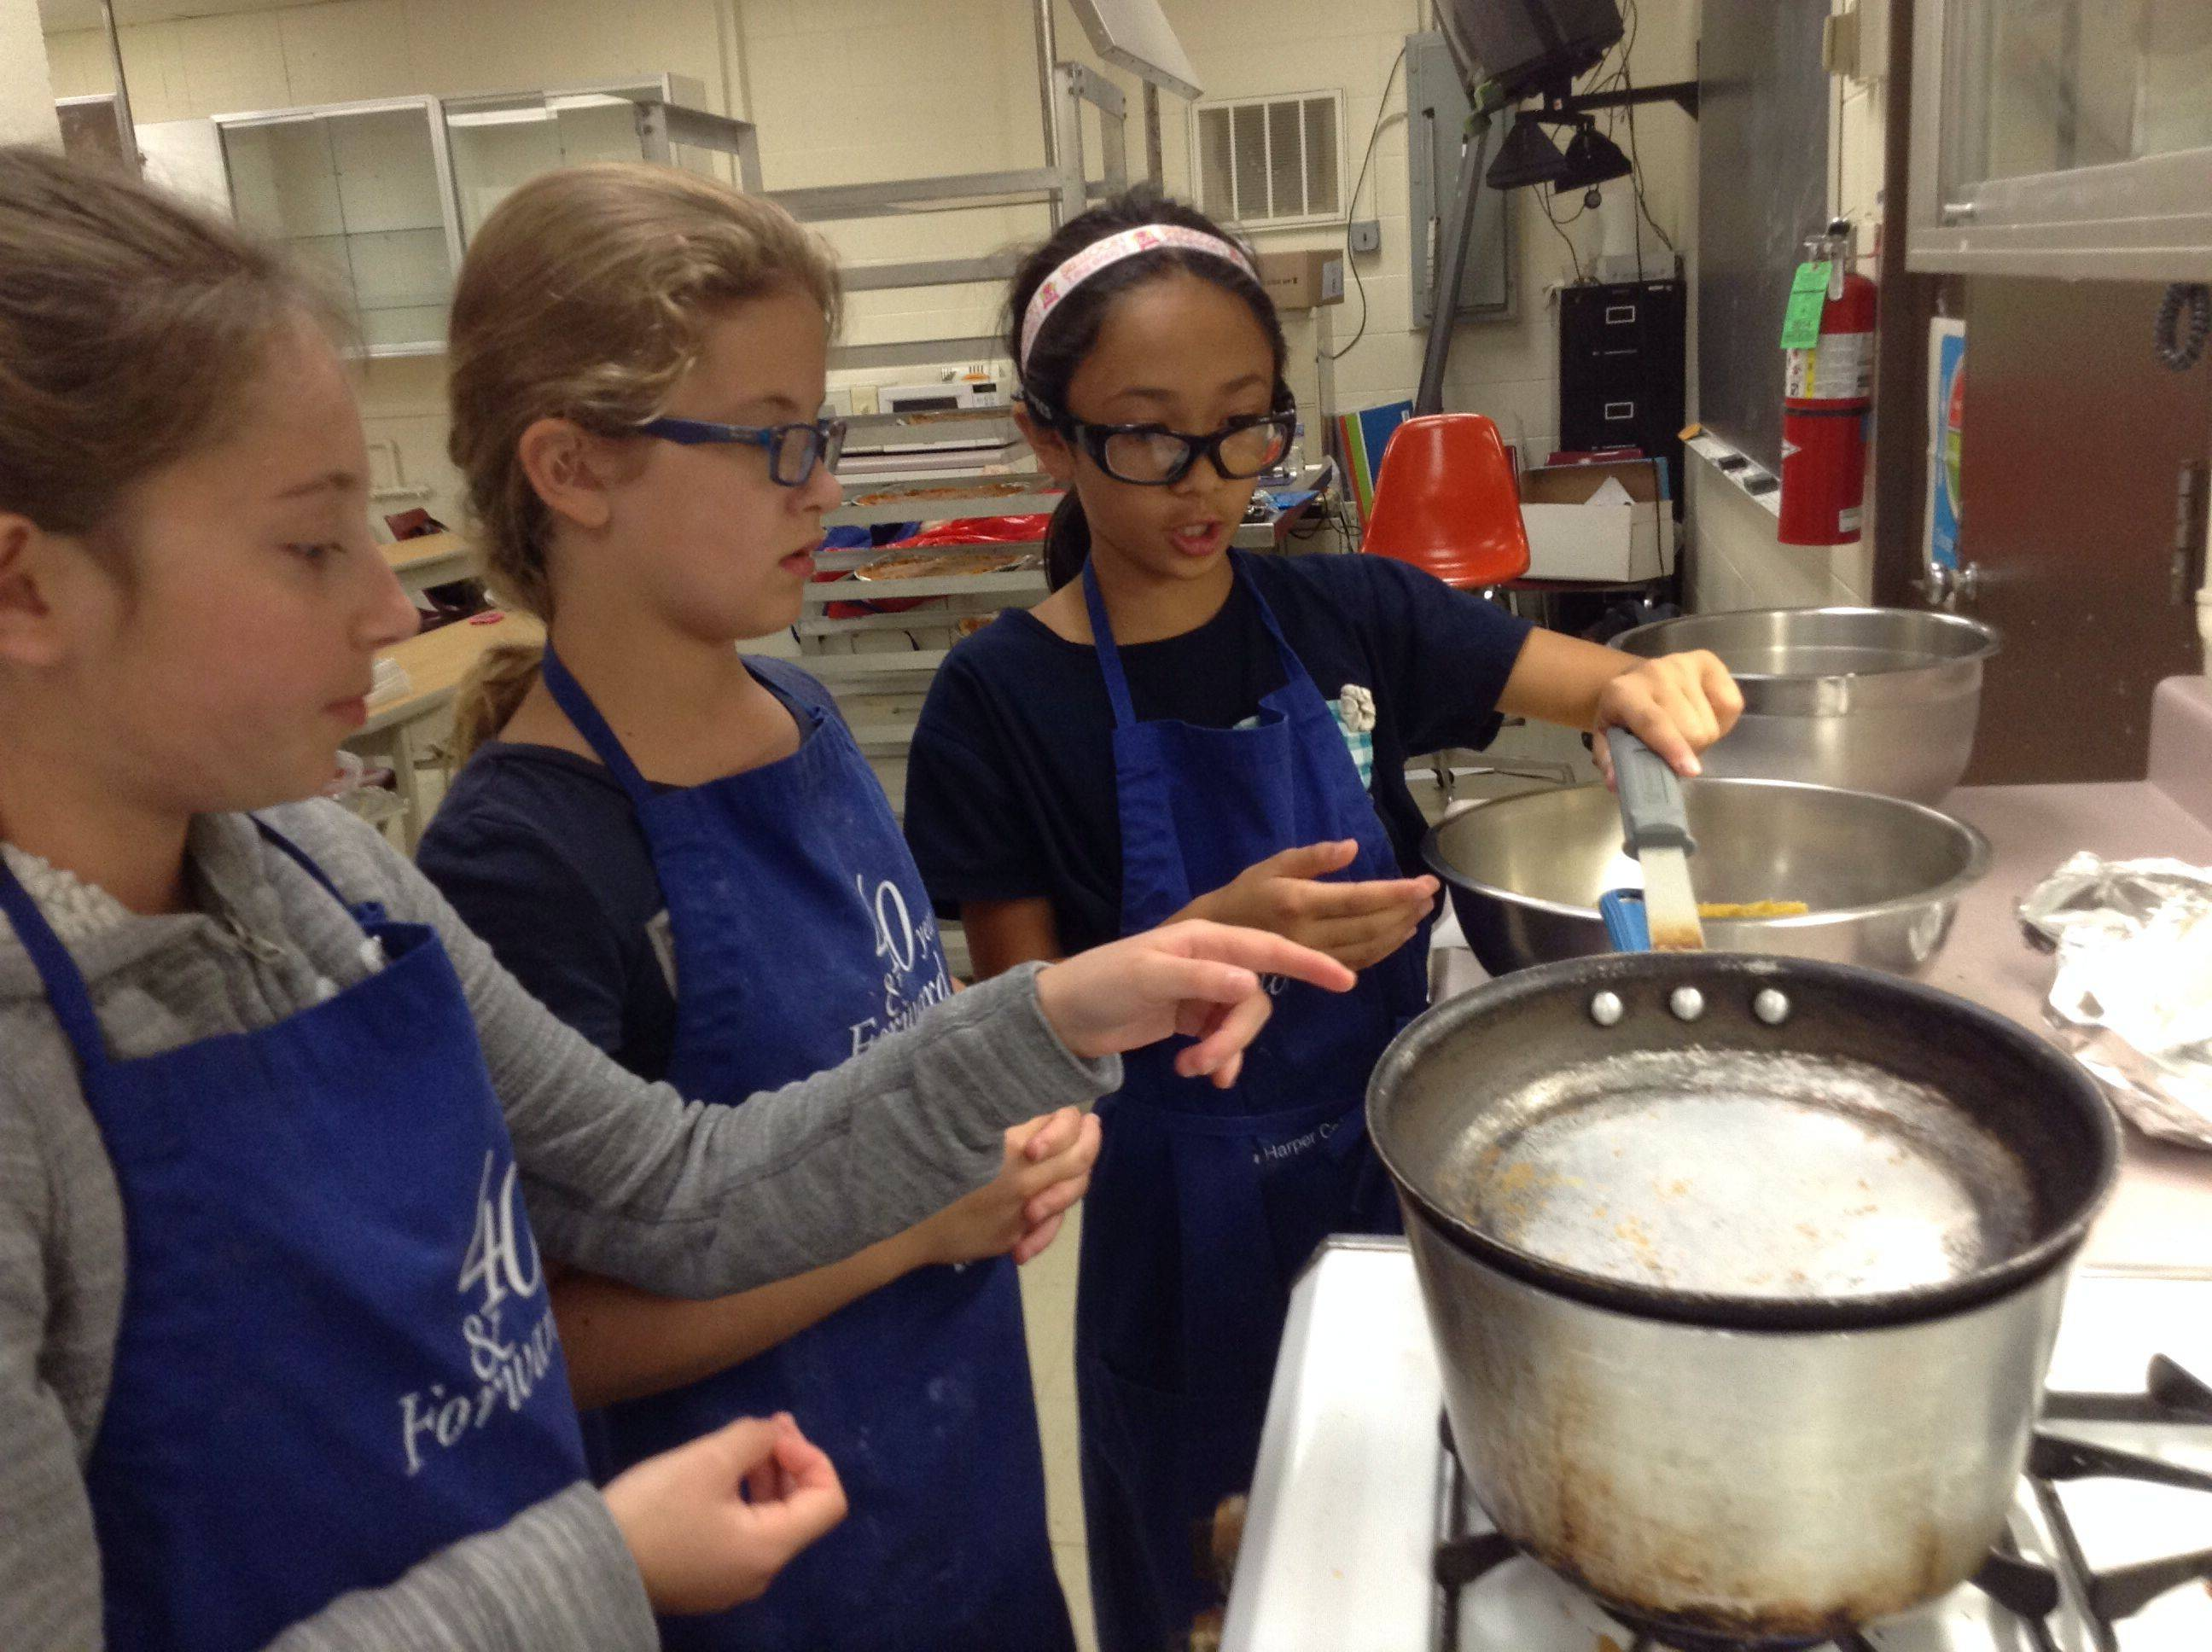 Mati Ciprian, 12, of Bloomingdale, Izabella Filip, 11, of Inverness, and Ananya Gupta, 10, of Roselle, prepare to boil water for penne pasta.